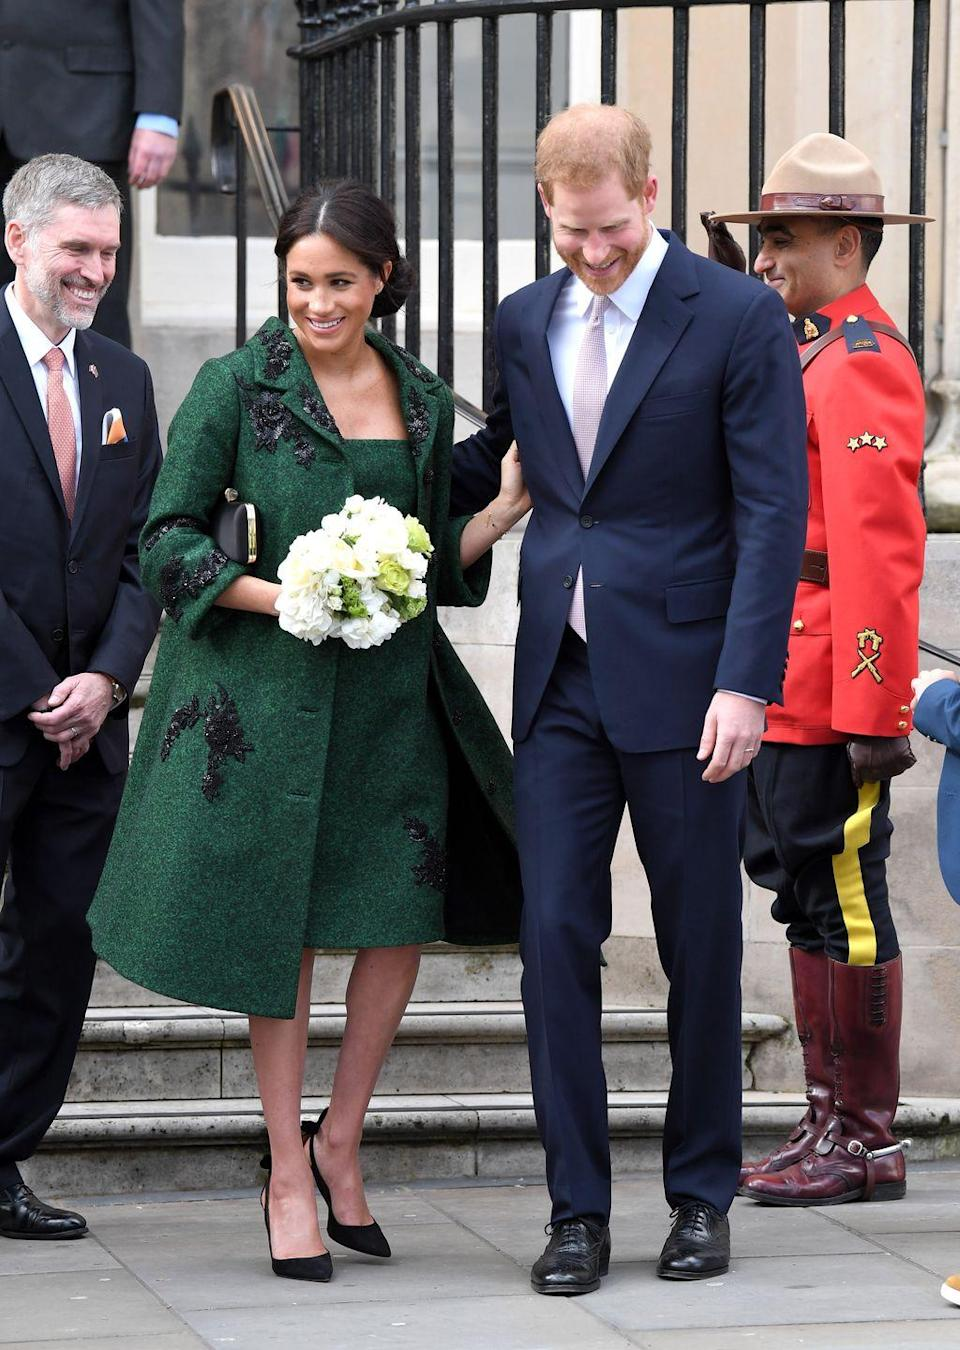 <p>Prince Harry and Meghan Markle attended a Commonwealth Youth Event at Canada House hand in hand. A very happy Meghan received flowers from a young fan. </p>